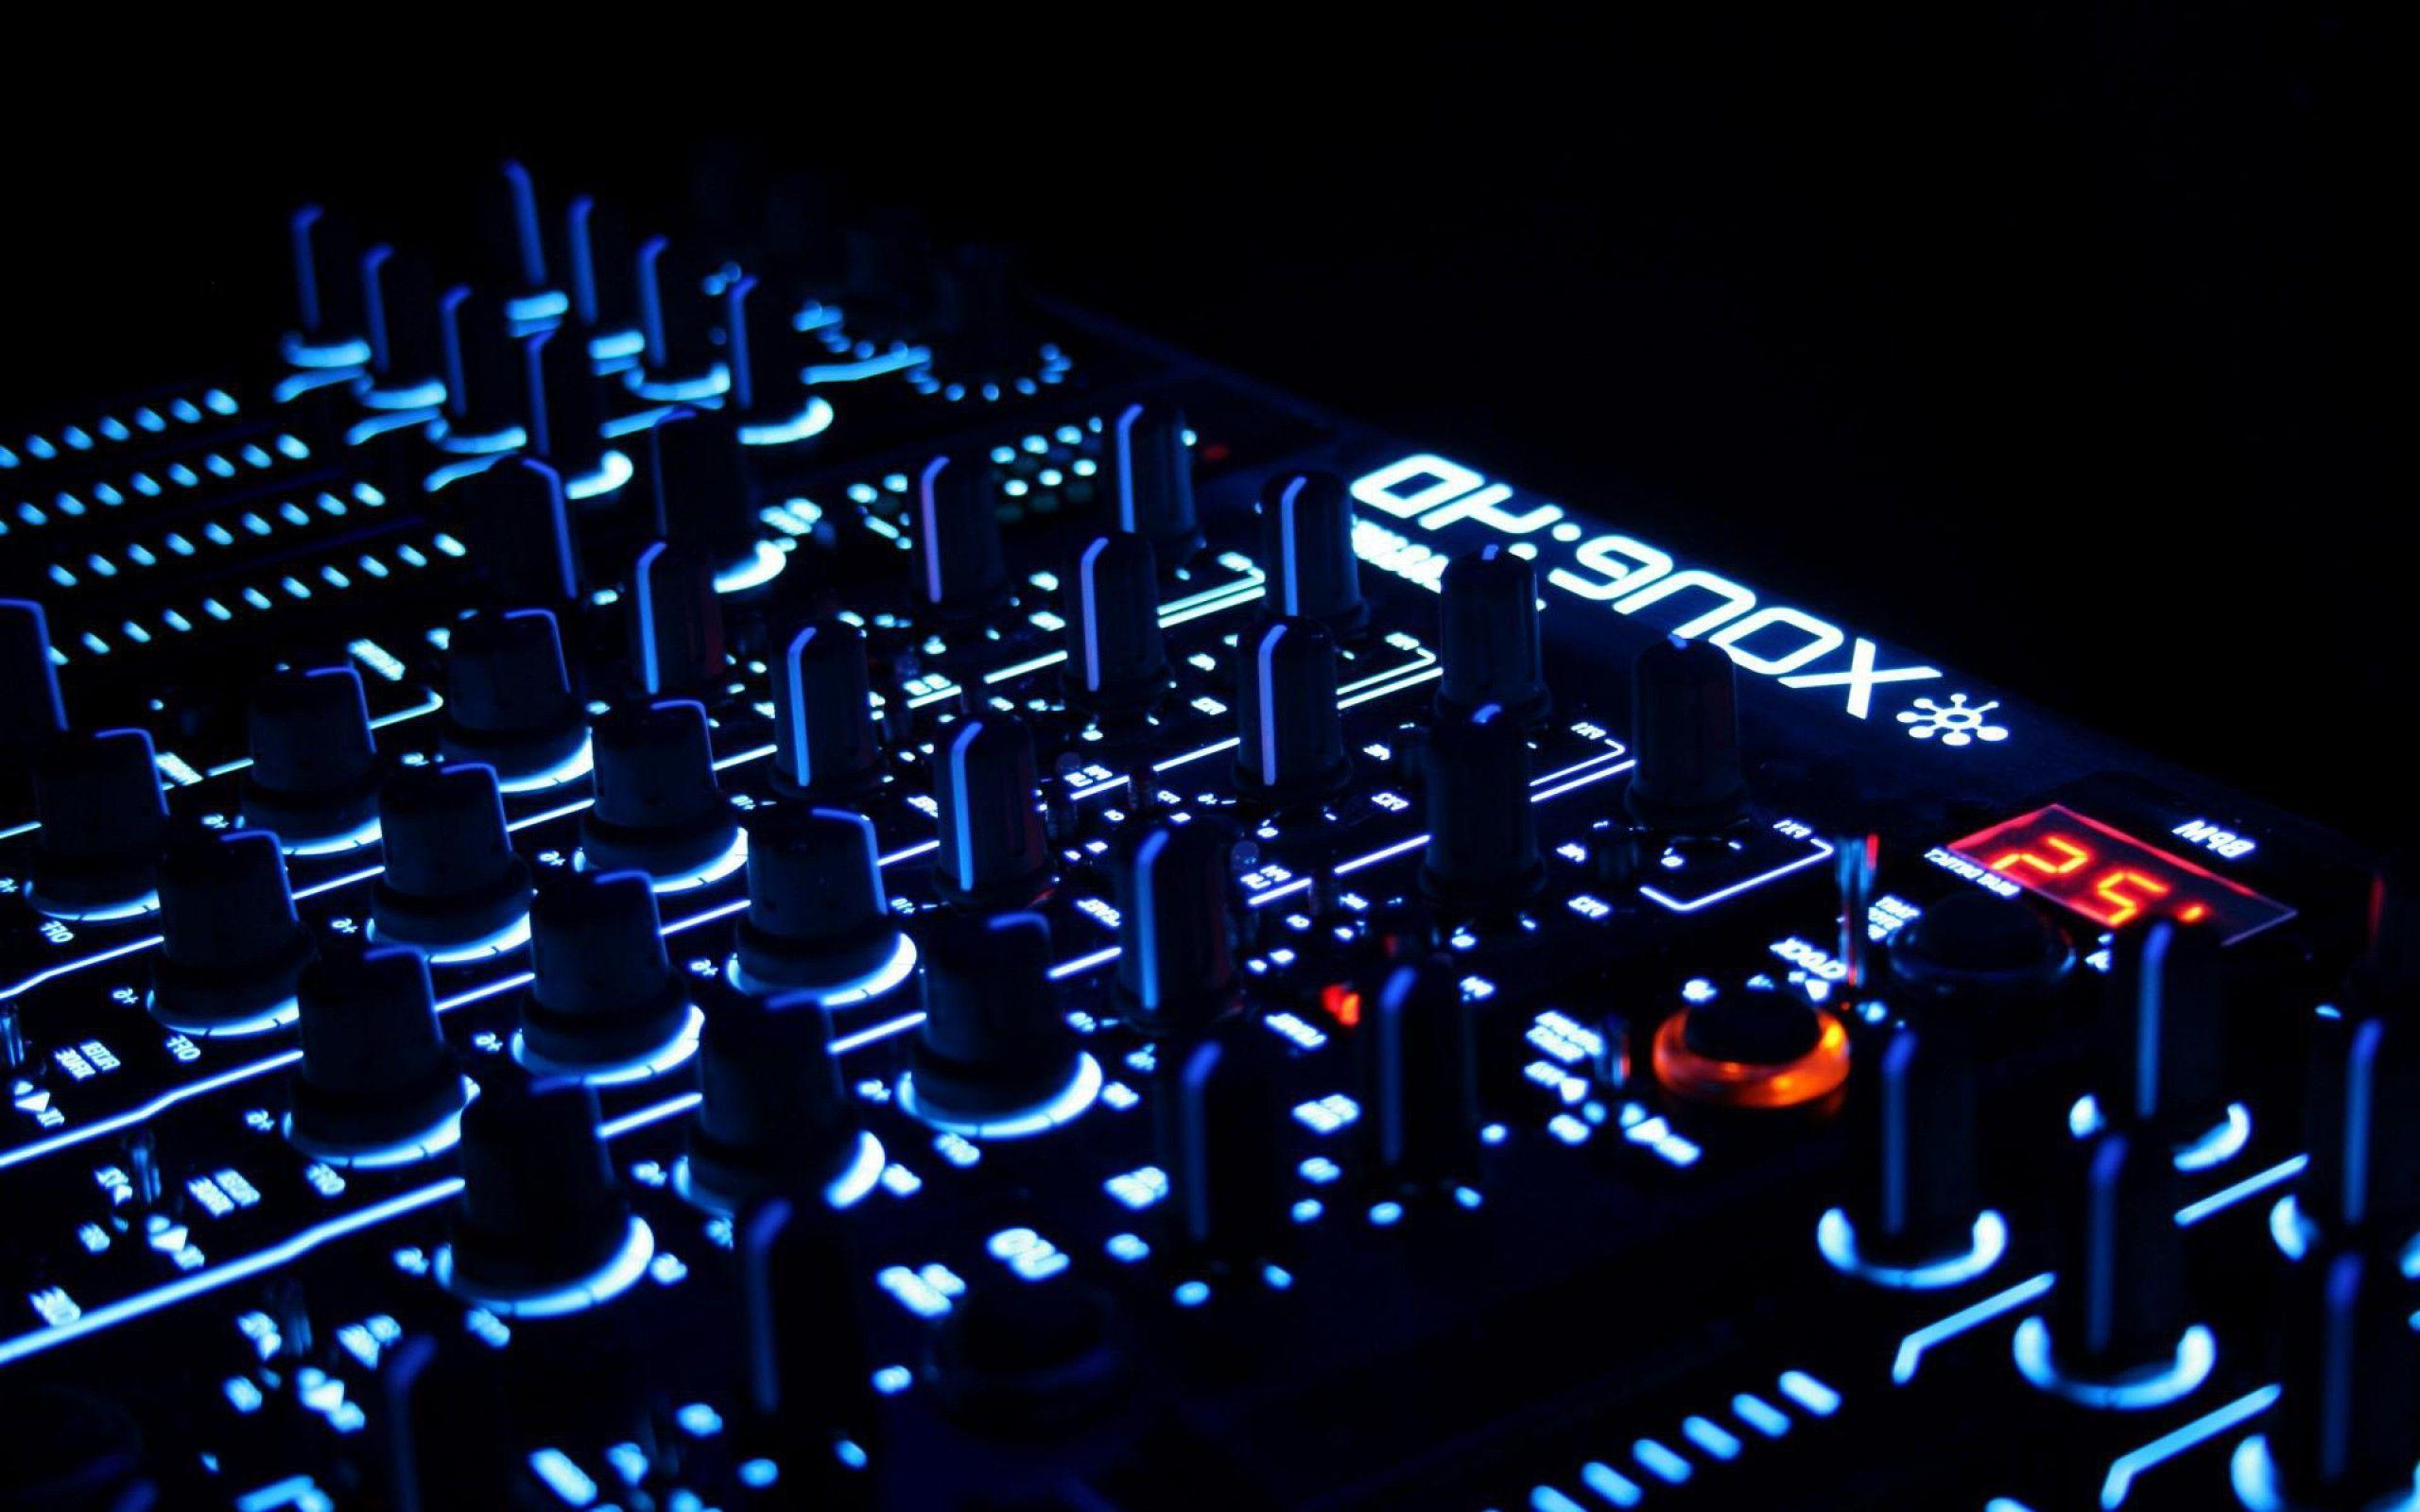 House music dj wallpapers wallpaper cave for Famous house music